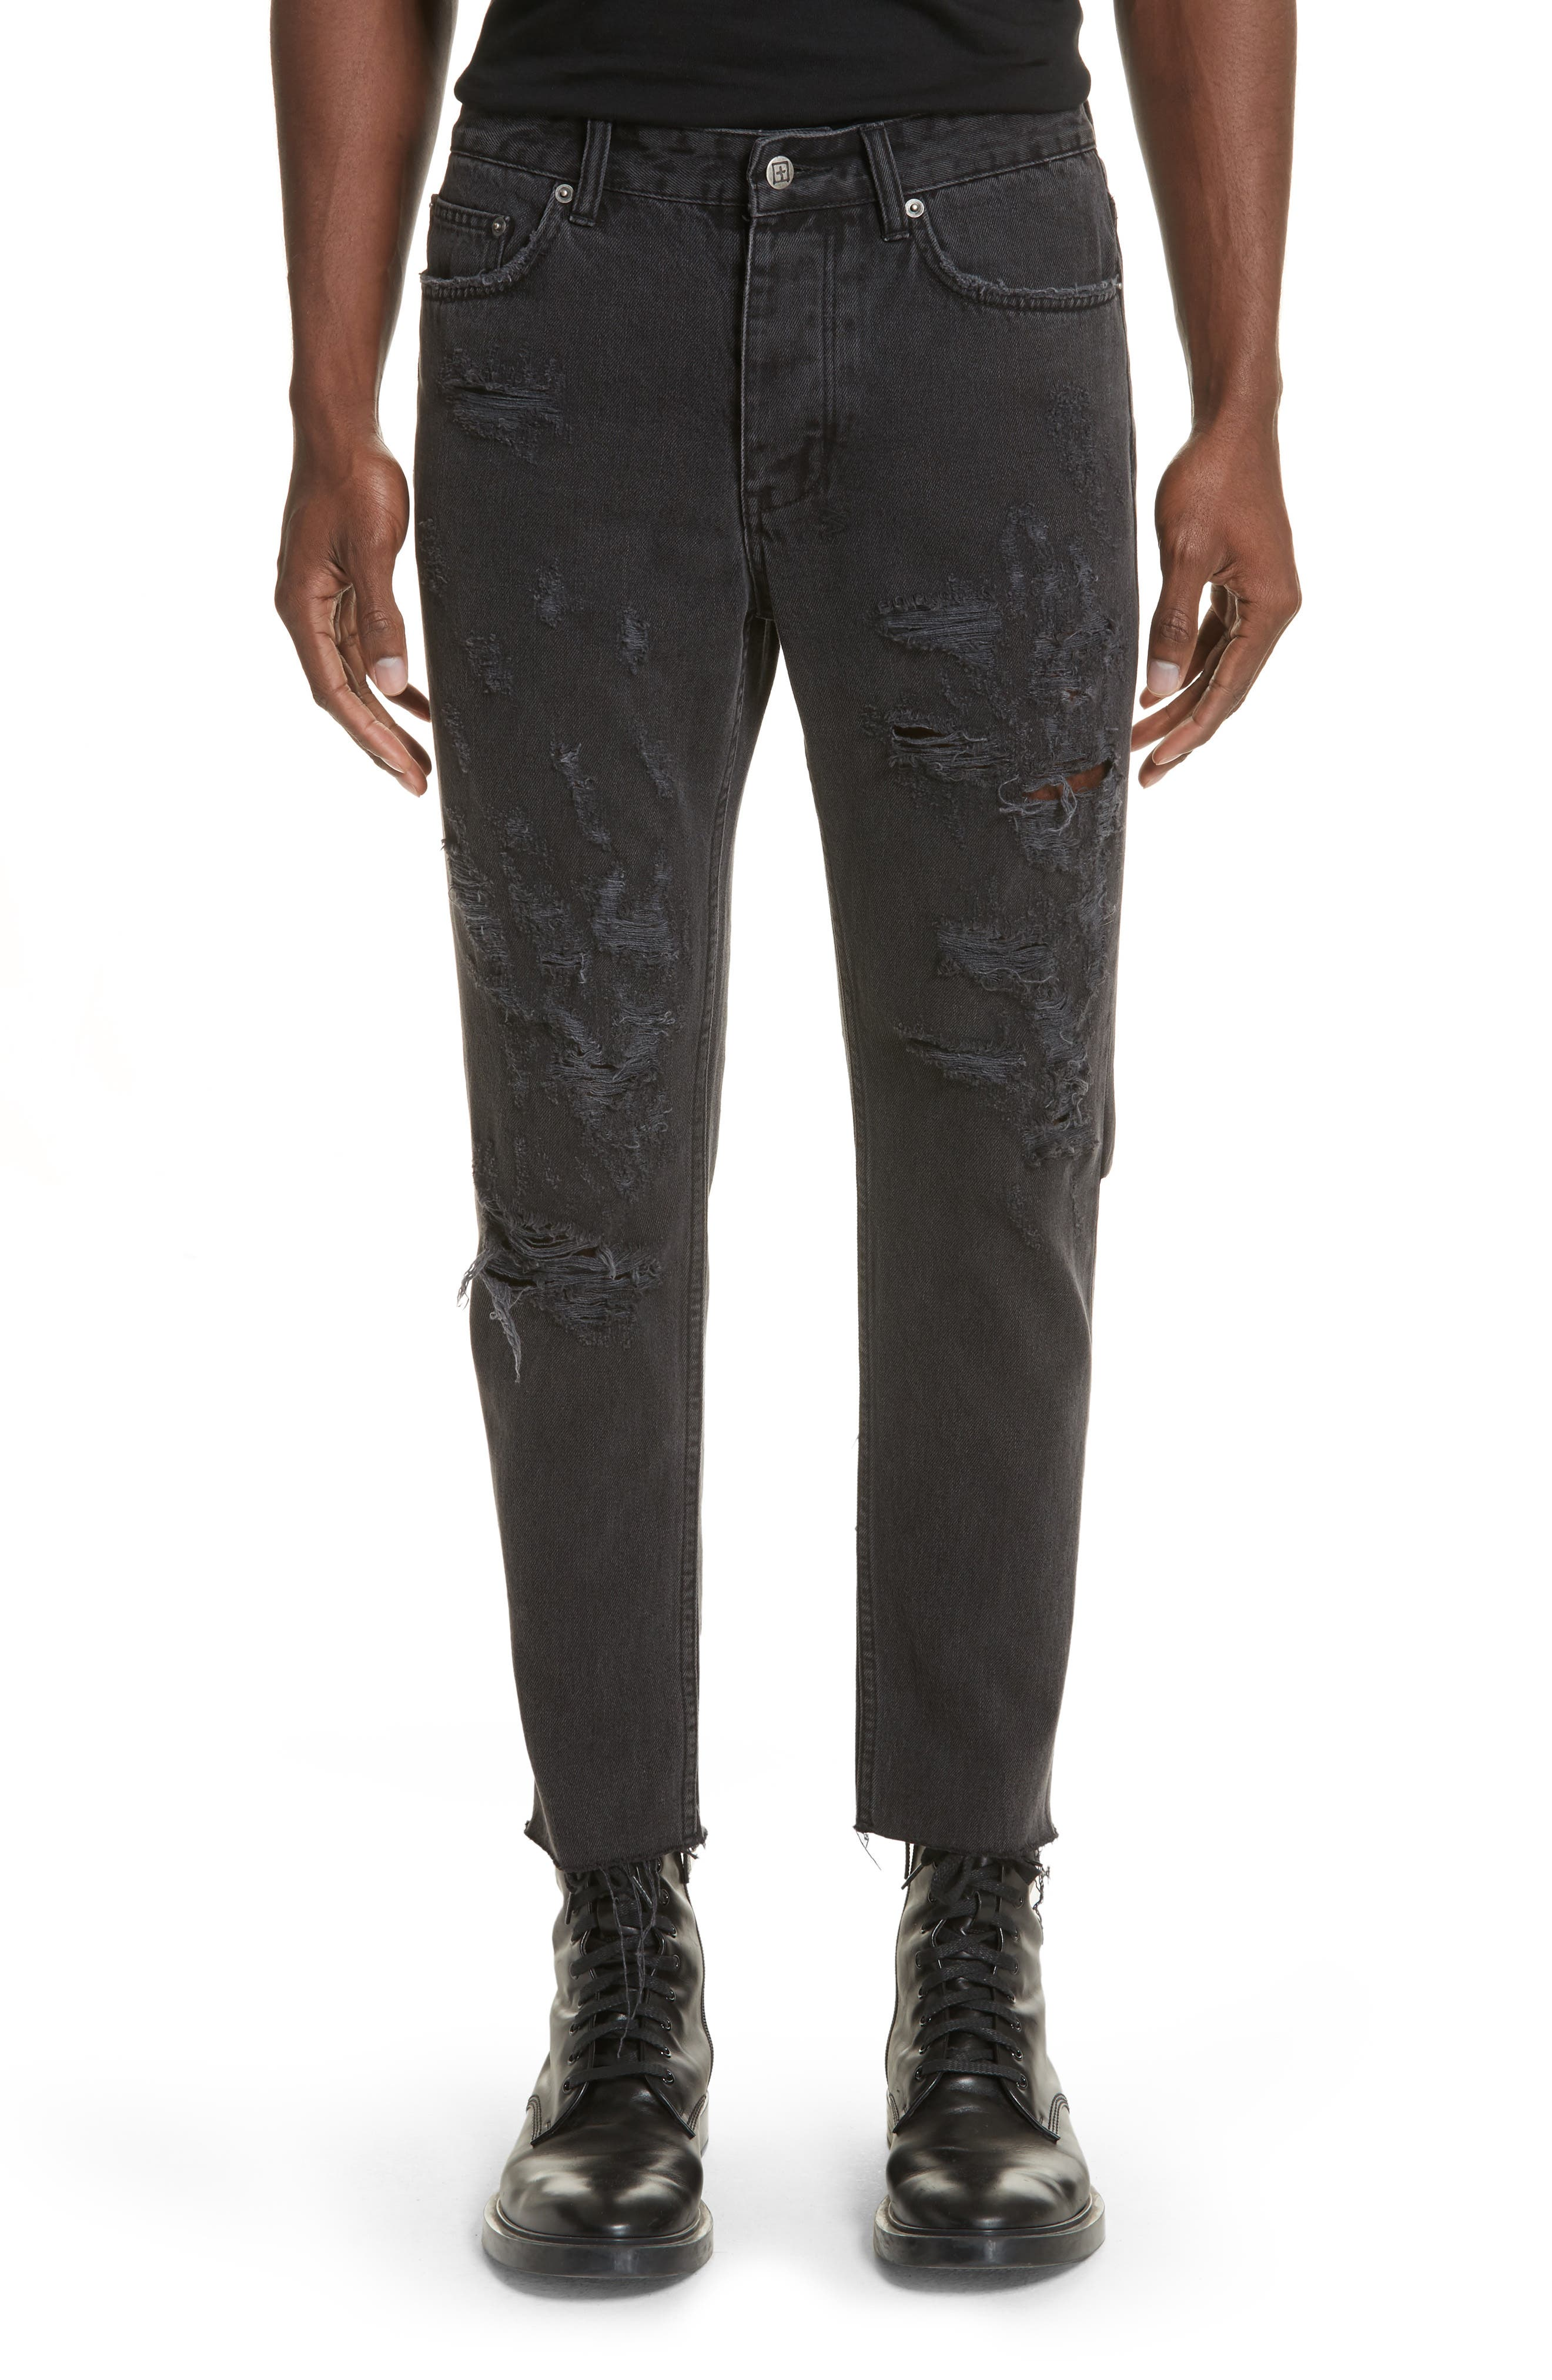 Chitch Chop Rat Attack Jeans,                         Main,                         color, 001